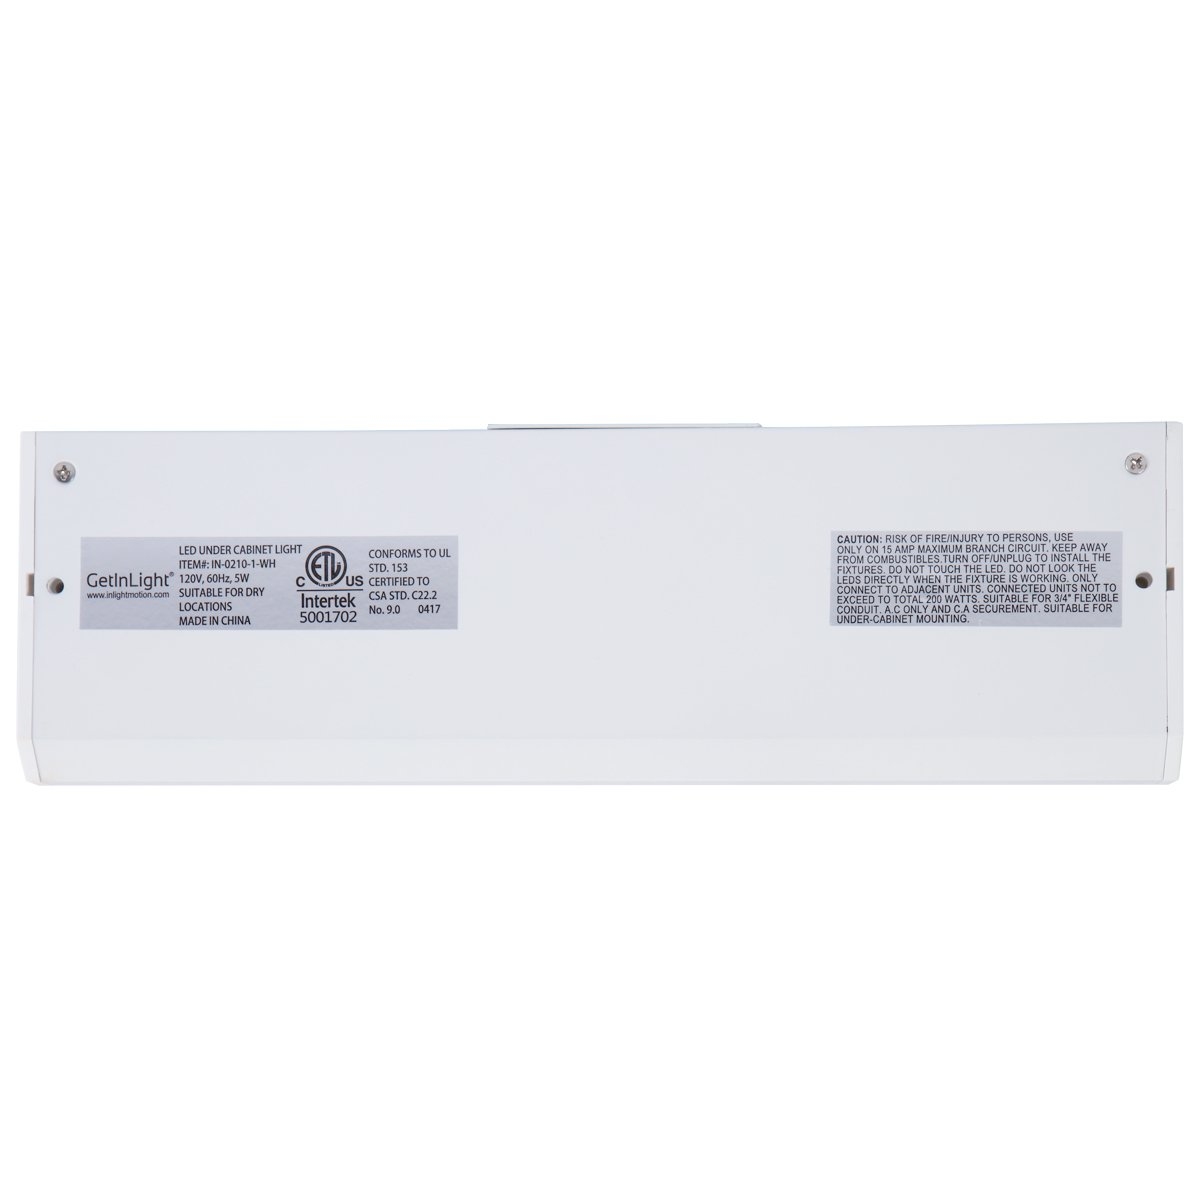 Getinlight 3 Color Levels Dimmable Led Under Cabinet Lighting With The Flex Conduit Mounts Underneath Main Panel Each Line Connects Etl Listed Warm White 2700k Soft 3000k Bright 4000k Finished